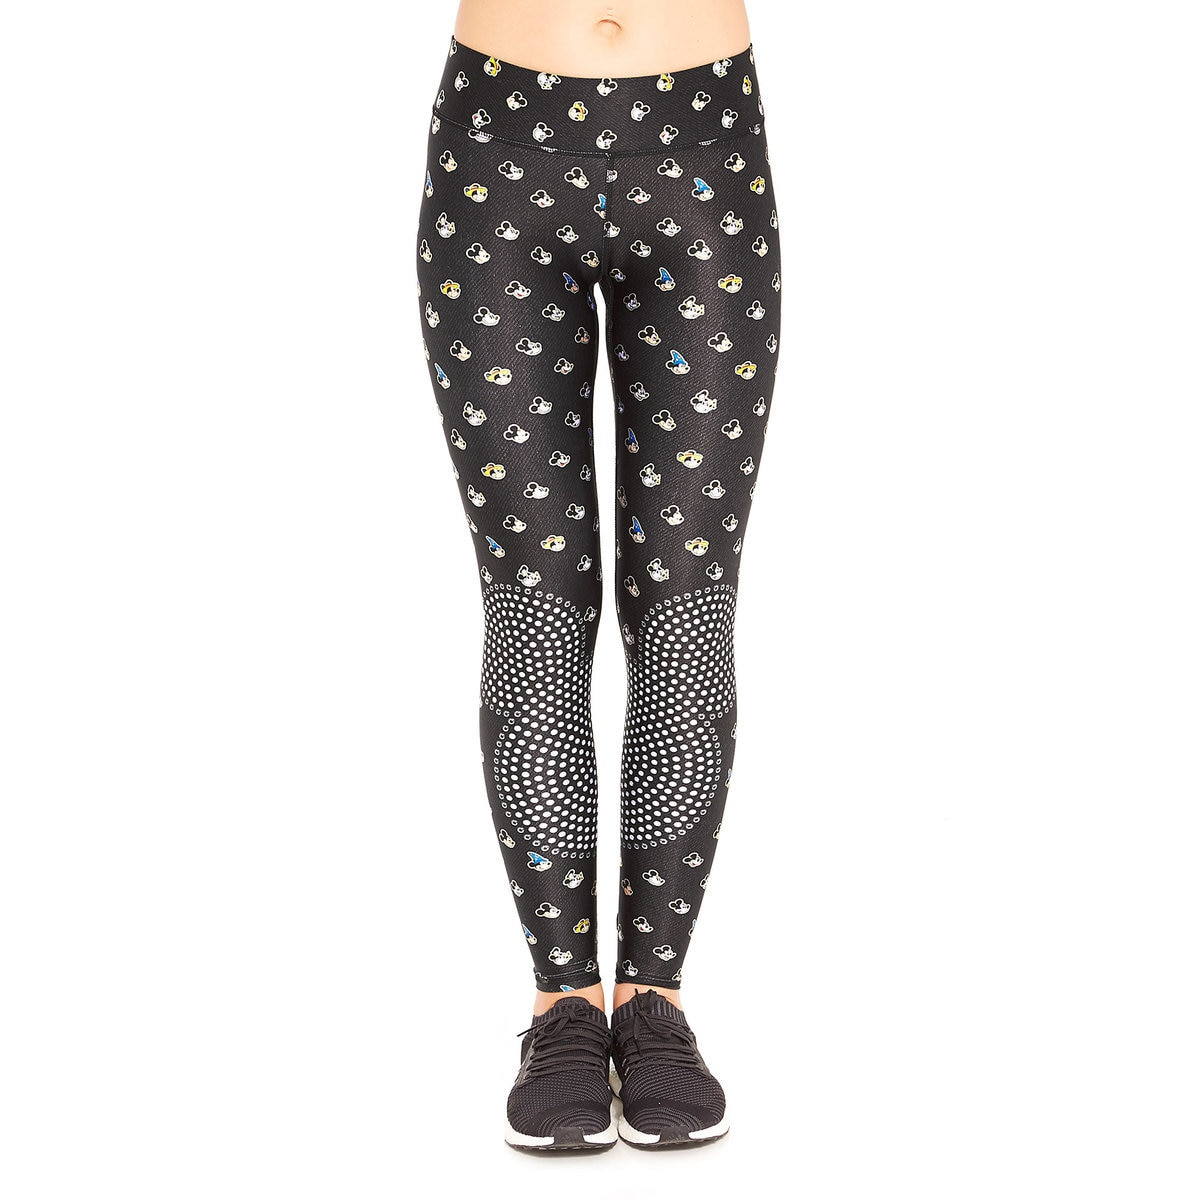 282a4e53f2501c Product Image of Mickey Mouse Many Faces Leggings for Women by Terez # 1